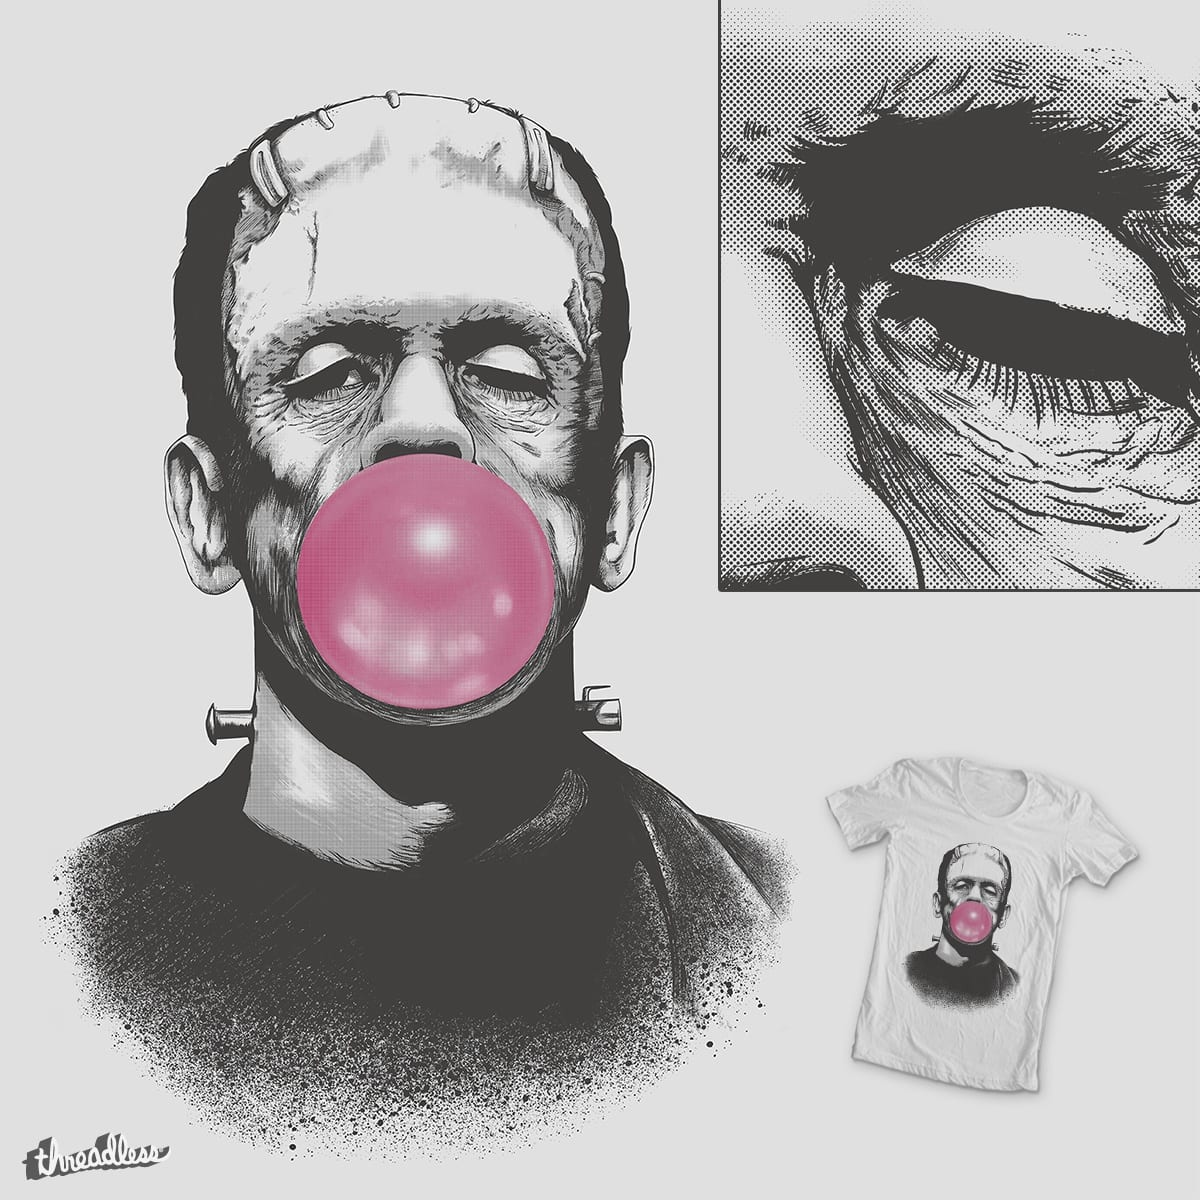 FRANKIE GOES TO HOLLYWOOD by los tomatos on Threadless